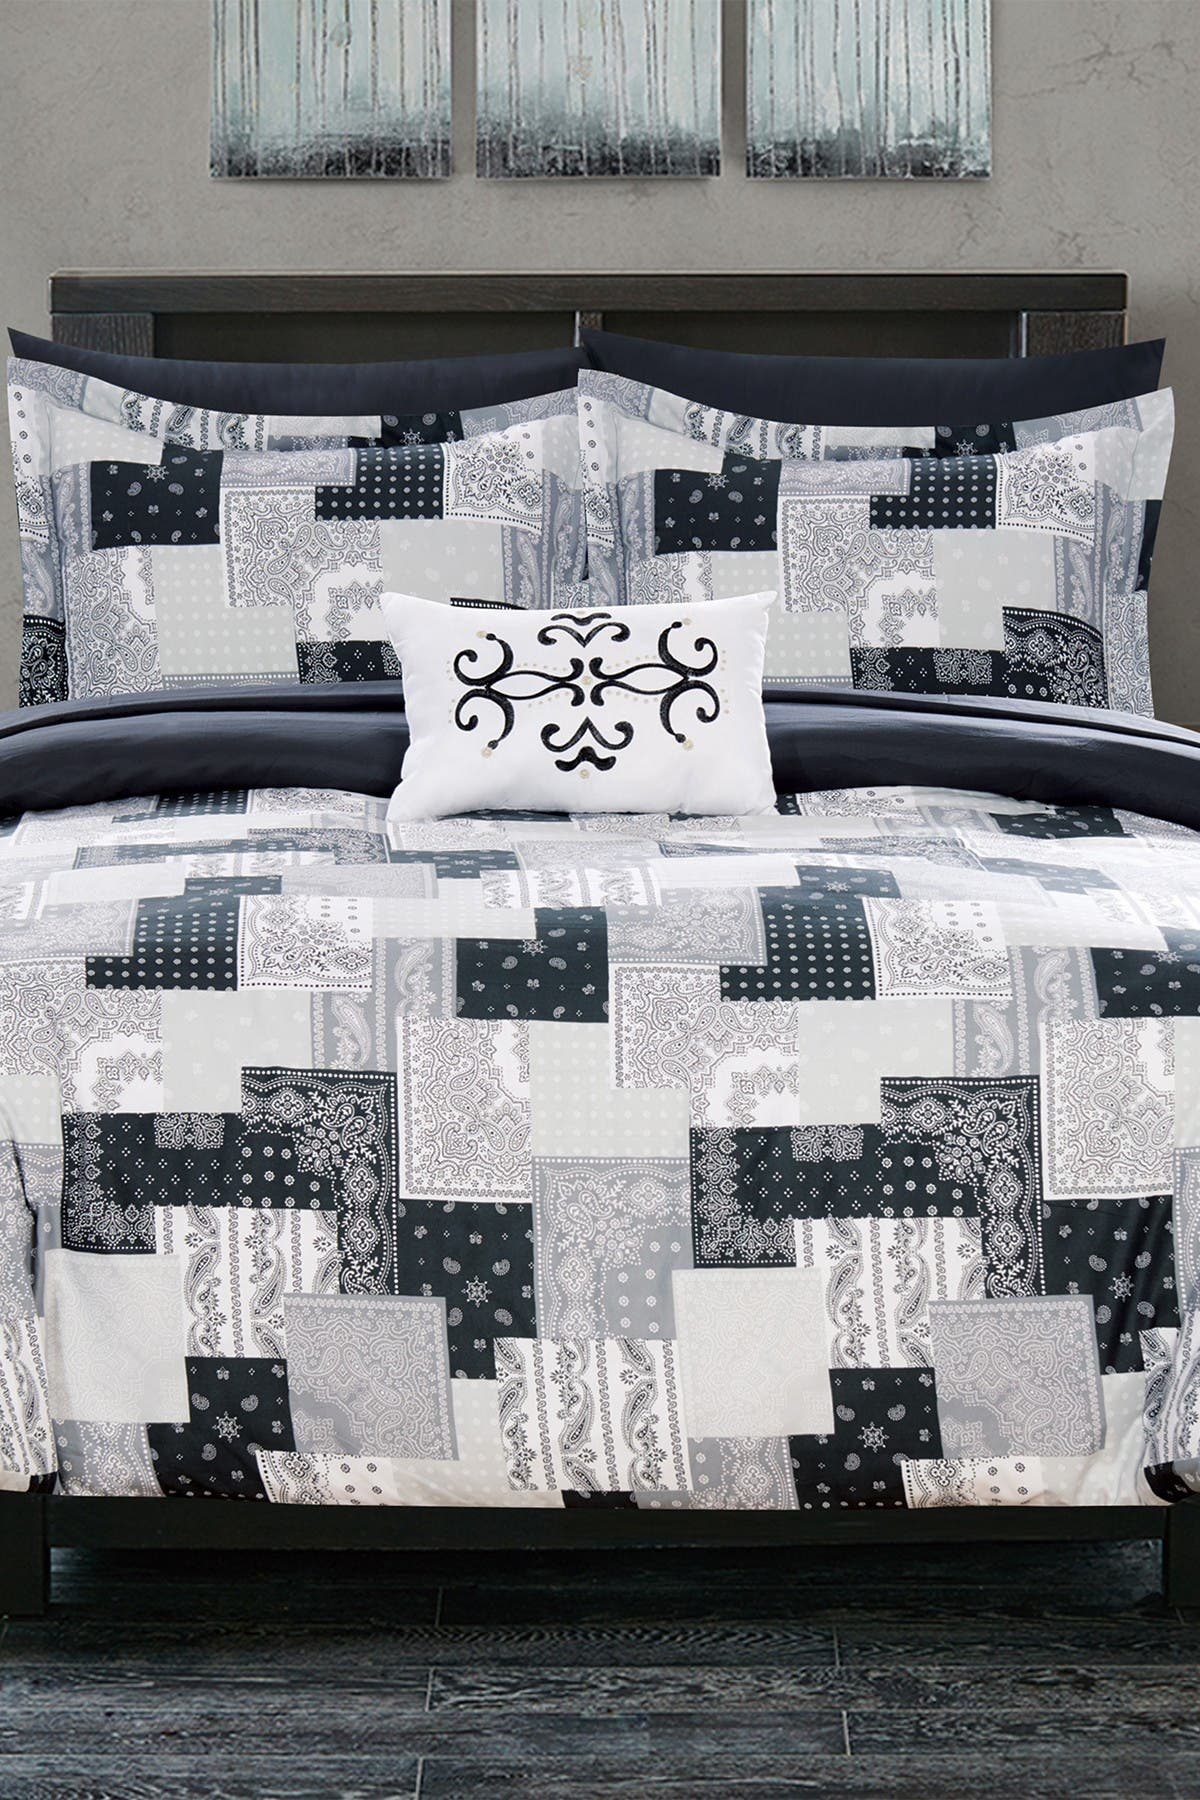 Chic Home Bedding Twin Dei Reversible Bohemian Bed In A Bag Comforter Set Black Nordstrom Rack